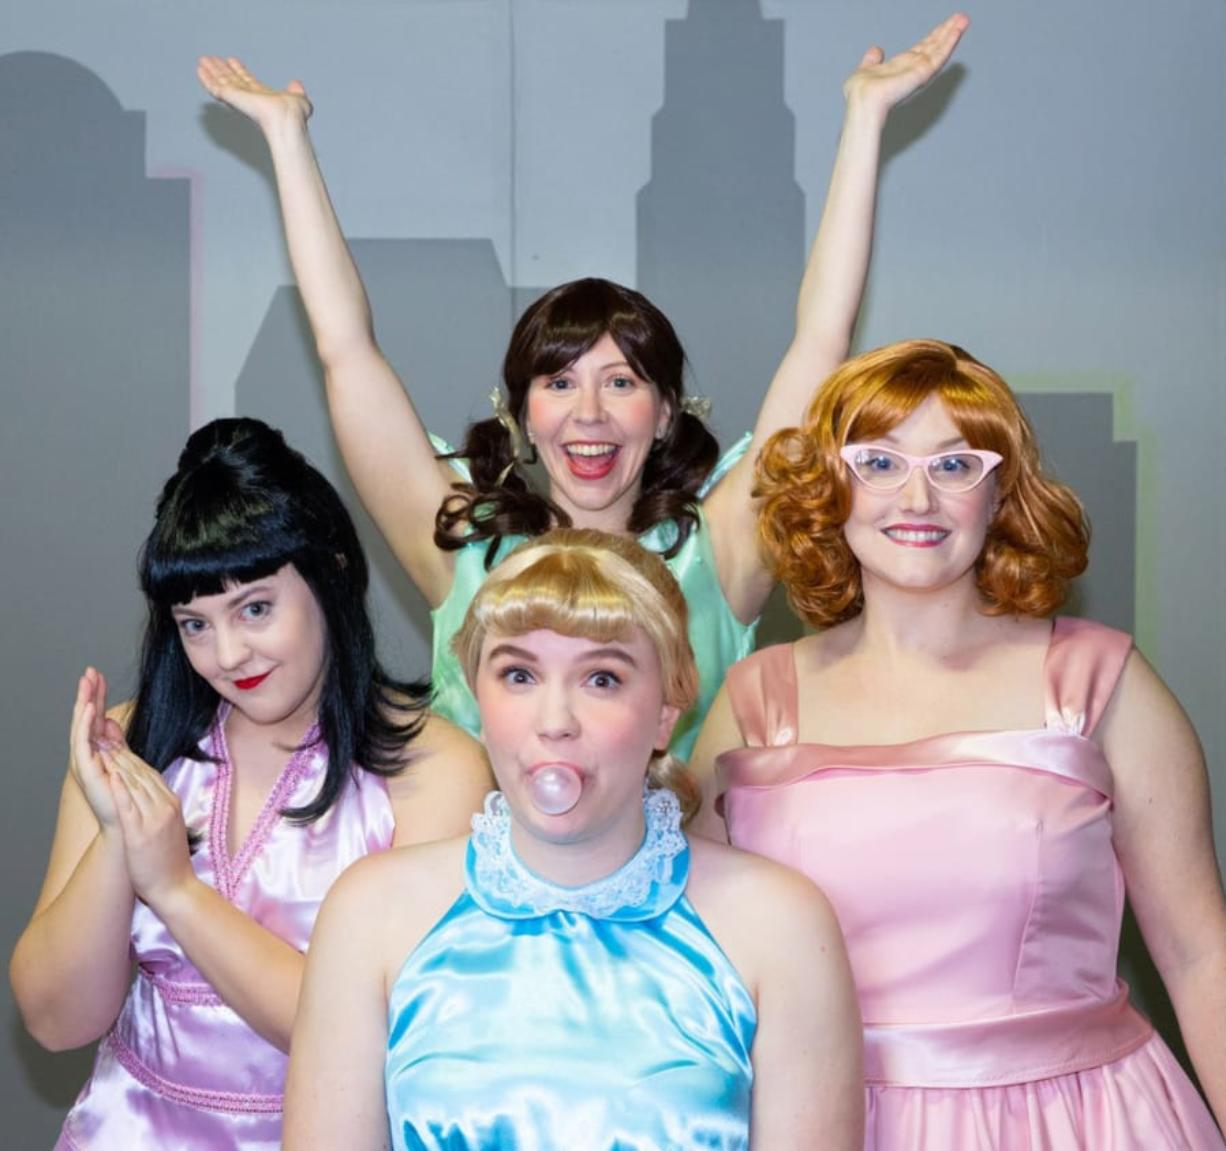 """Magenta Theater's first production of the 2020 season, """"The Marvelous Wonderettes,"""" features 35 tunes from the 1950s and 1960s and can be seen Feb. 14-20 at the downtown Vancouver theater. (Contributed photo)"""